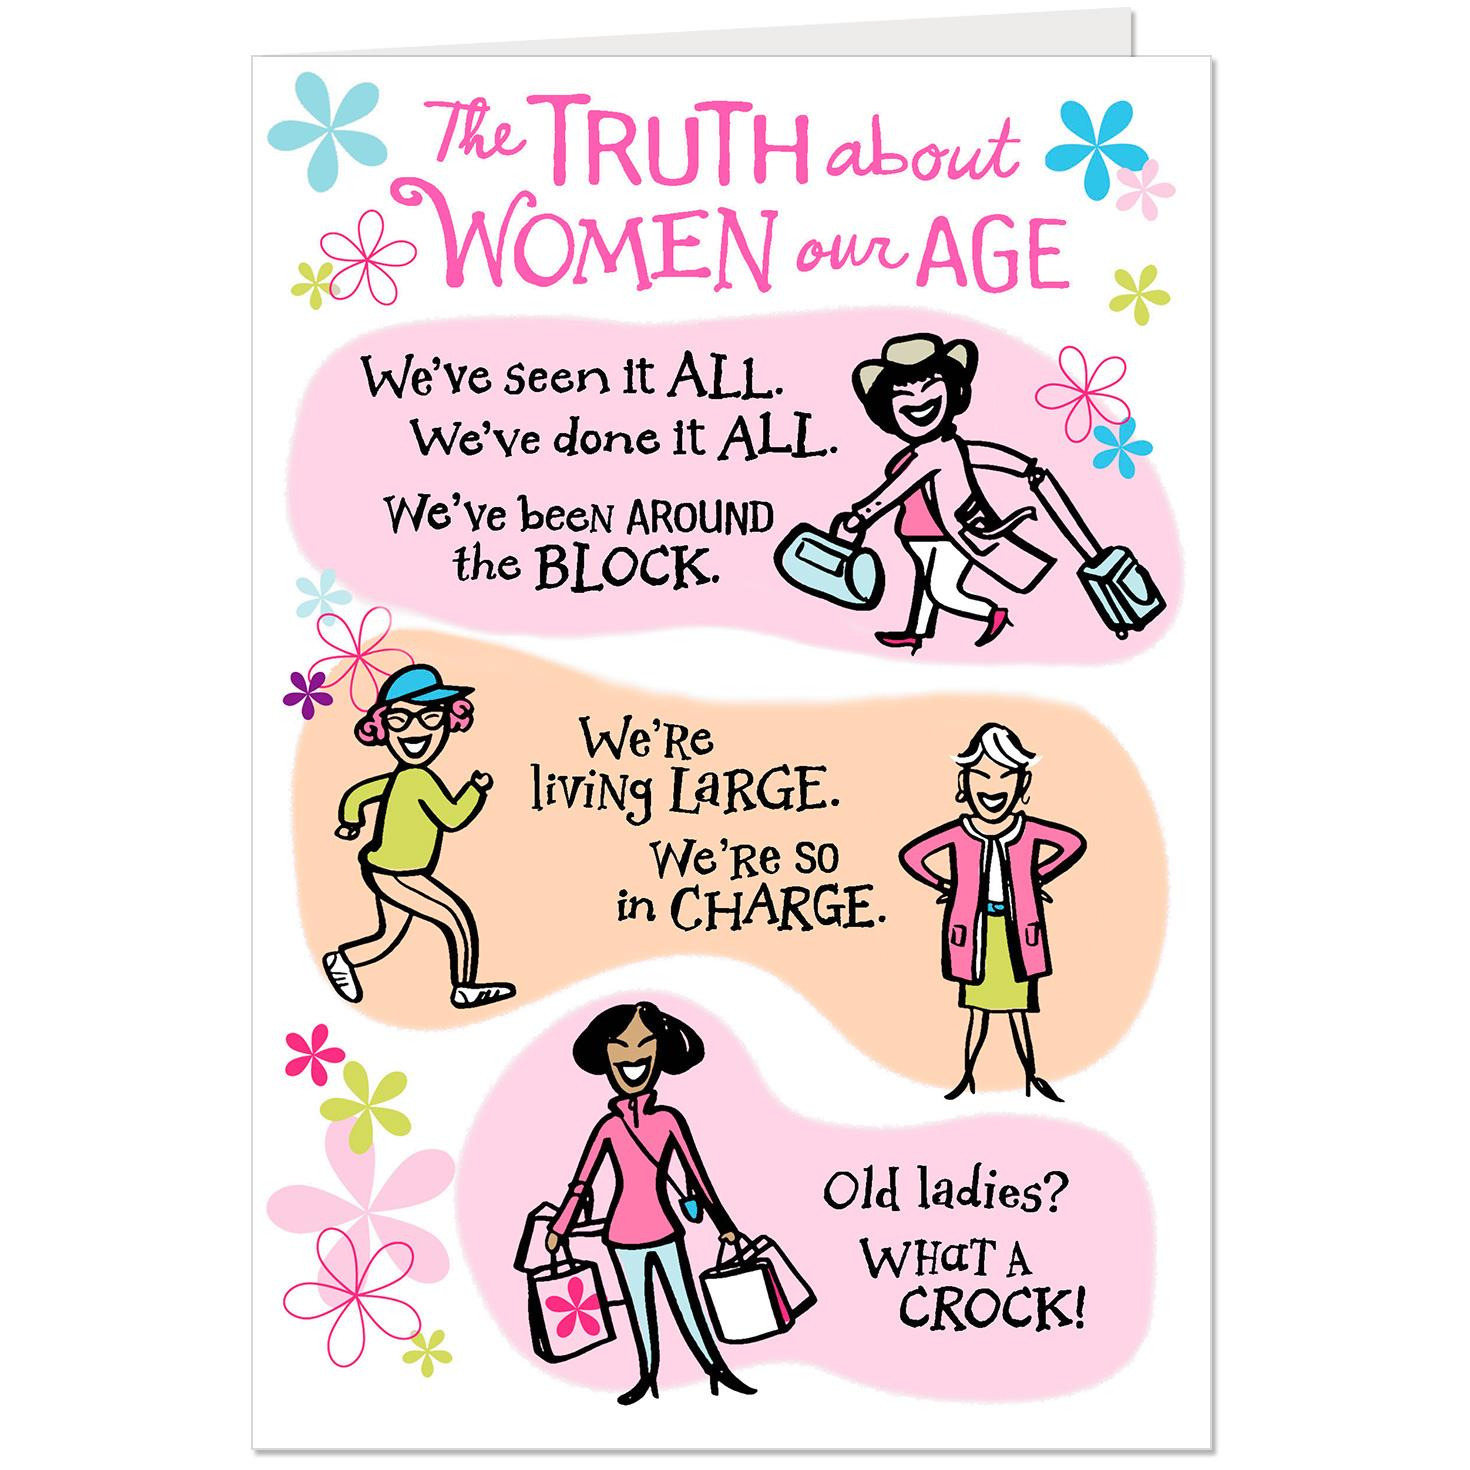 Women Our Age Funny Birthday Card For Friend